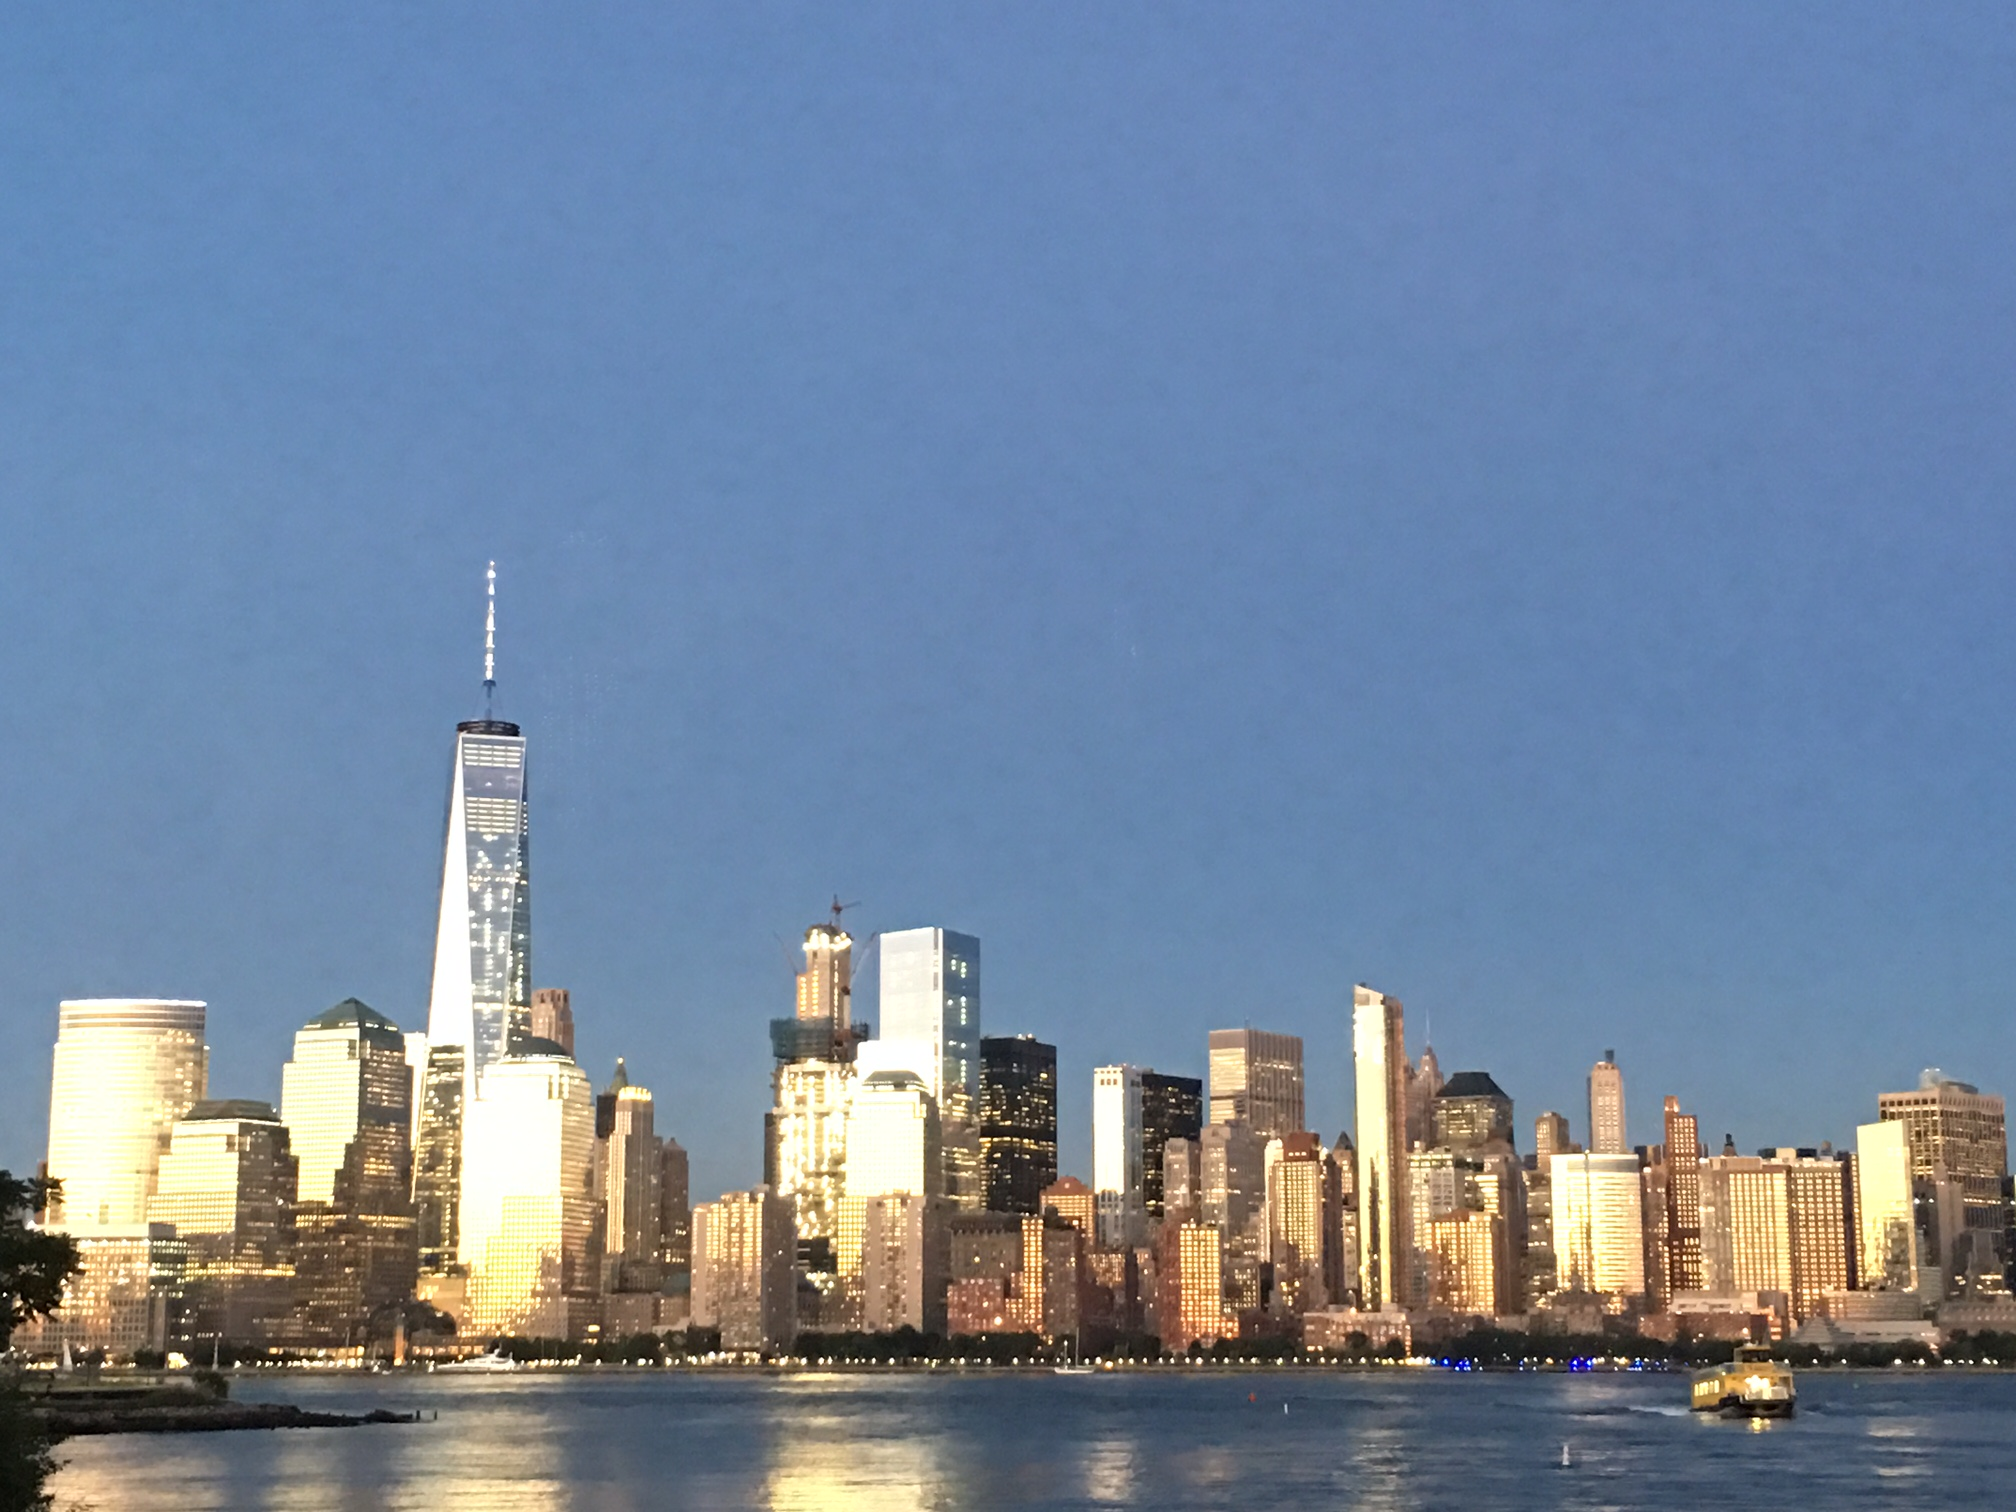 Twilight view of NYC from NJ side of Hudson